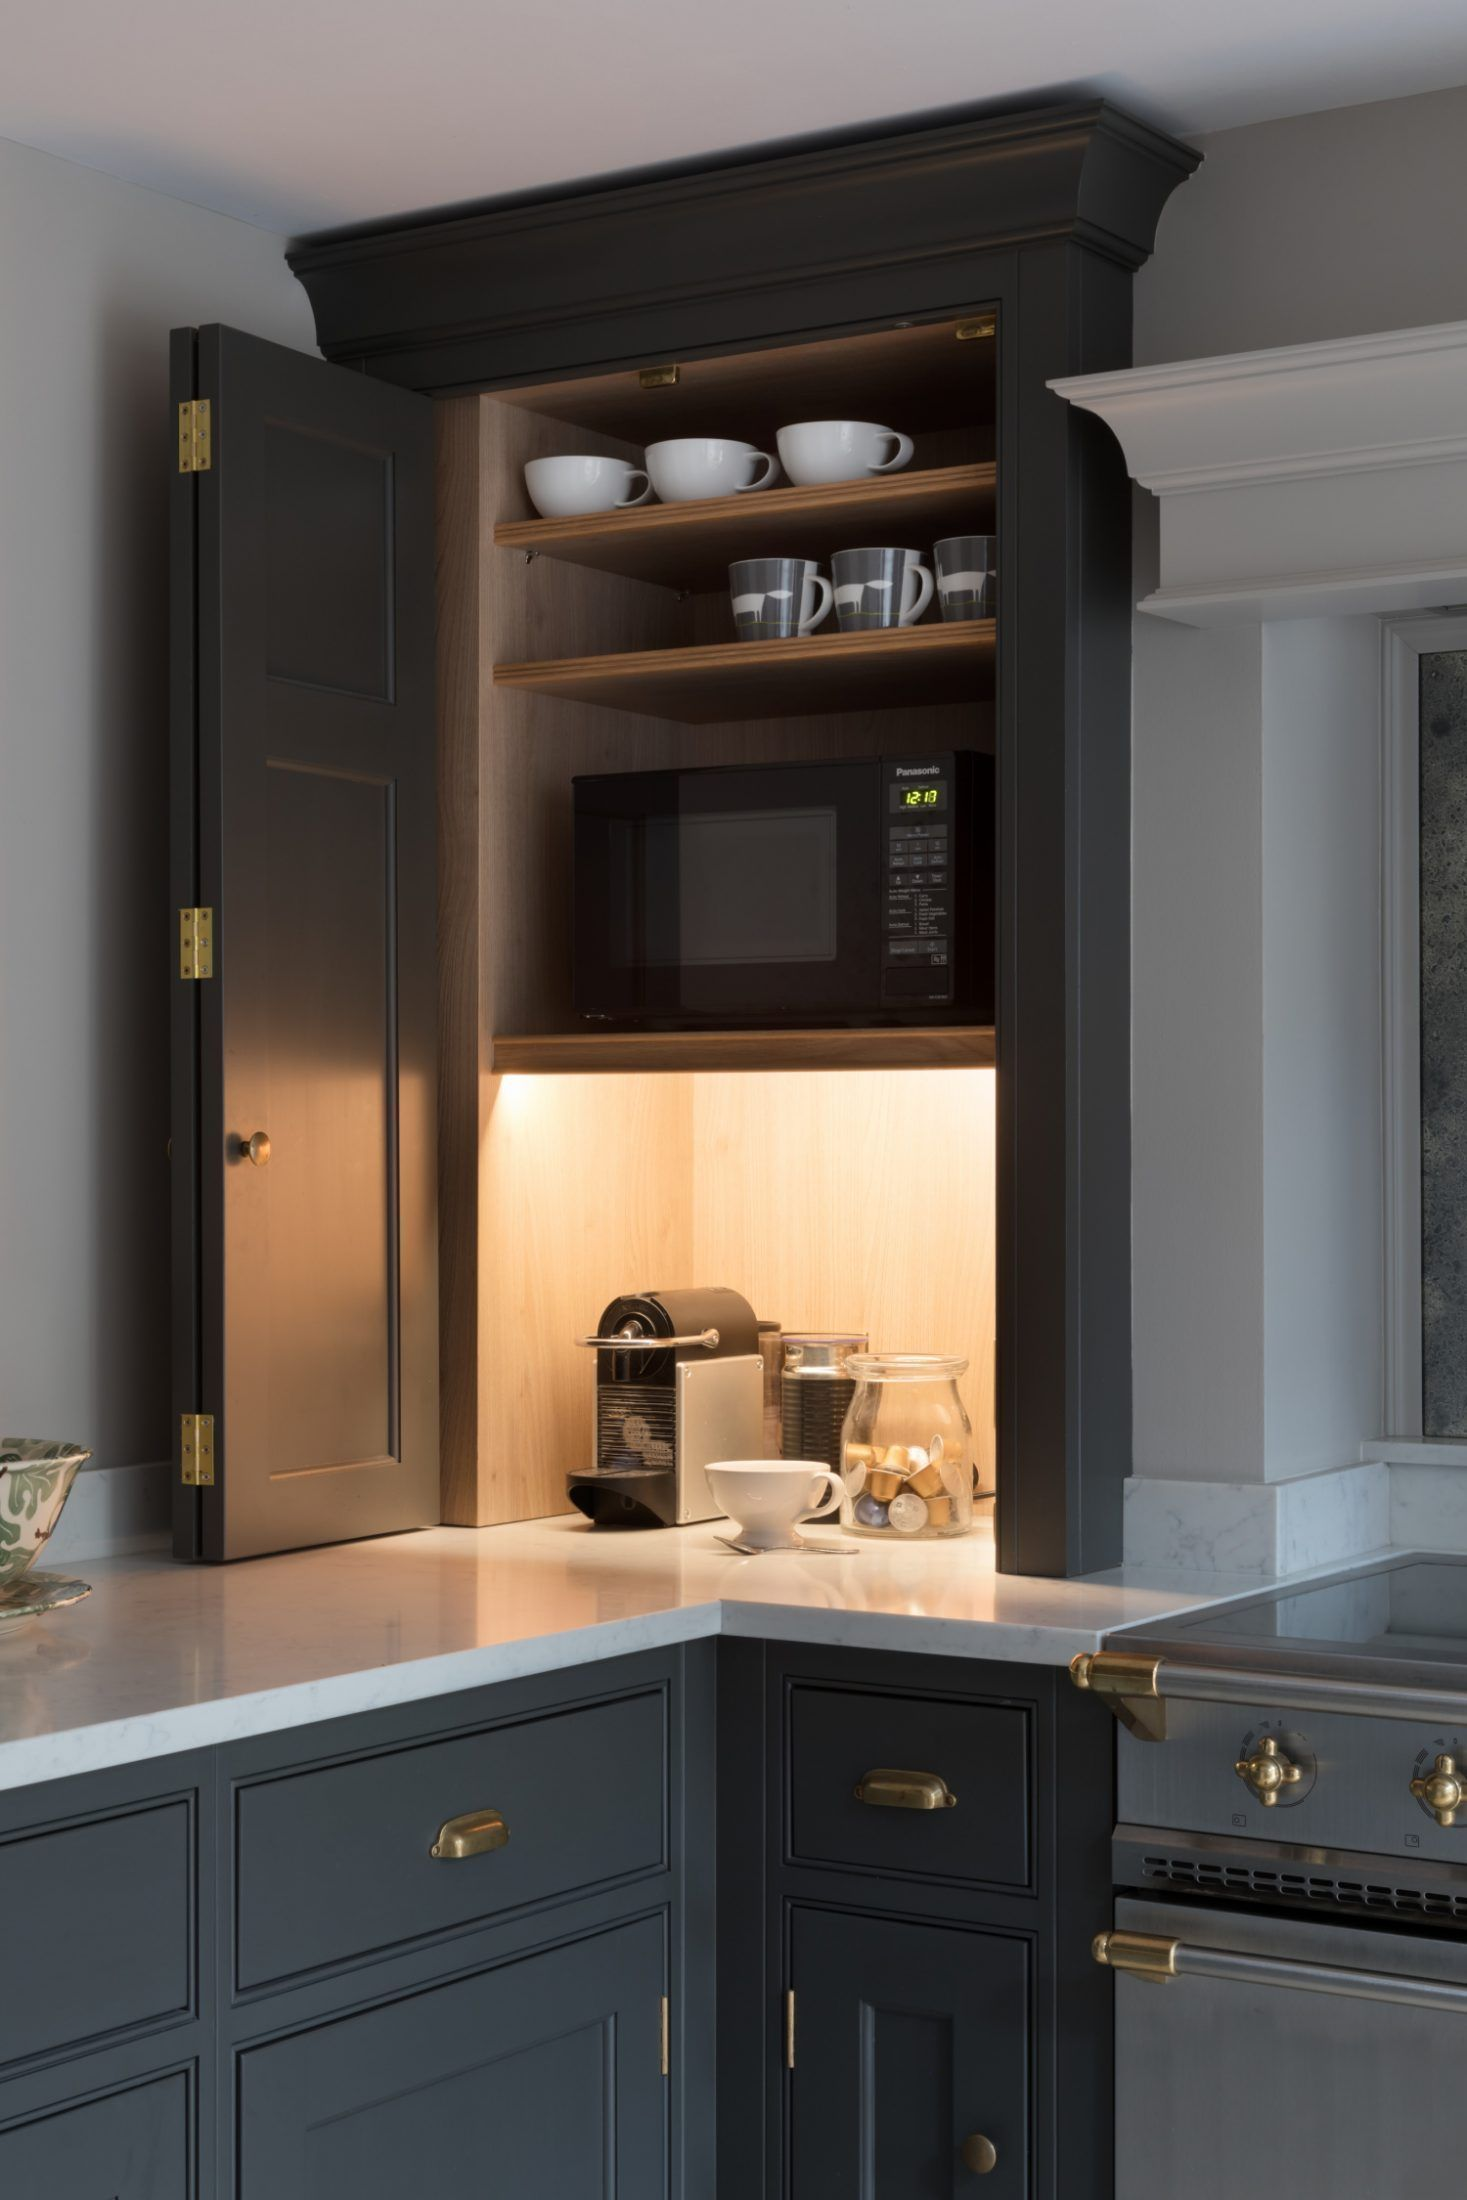 Fabulous Excellent Kitchen Cabinet And Home Equipment Kitchen Organization Diy Country Kitchen Kitchen Remodeling Projects